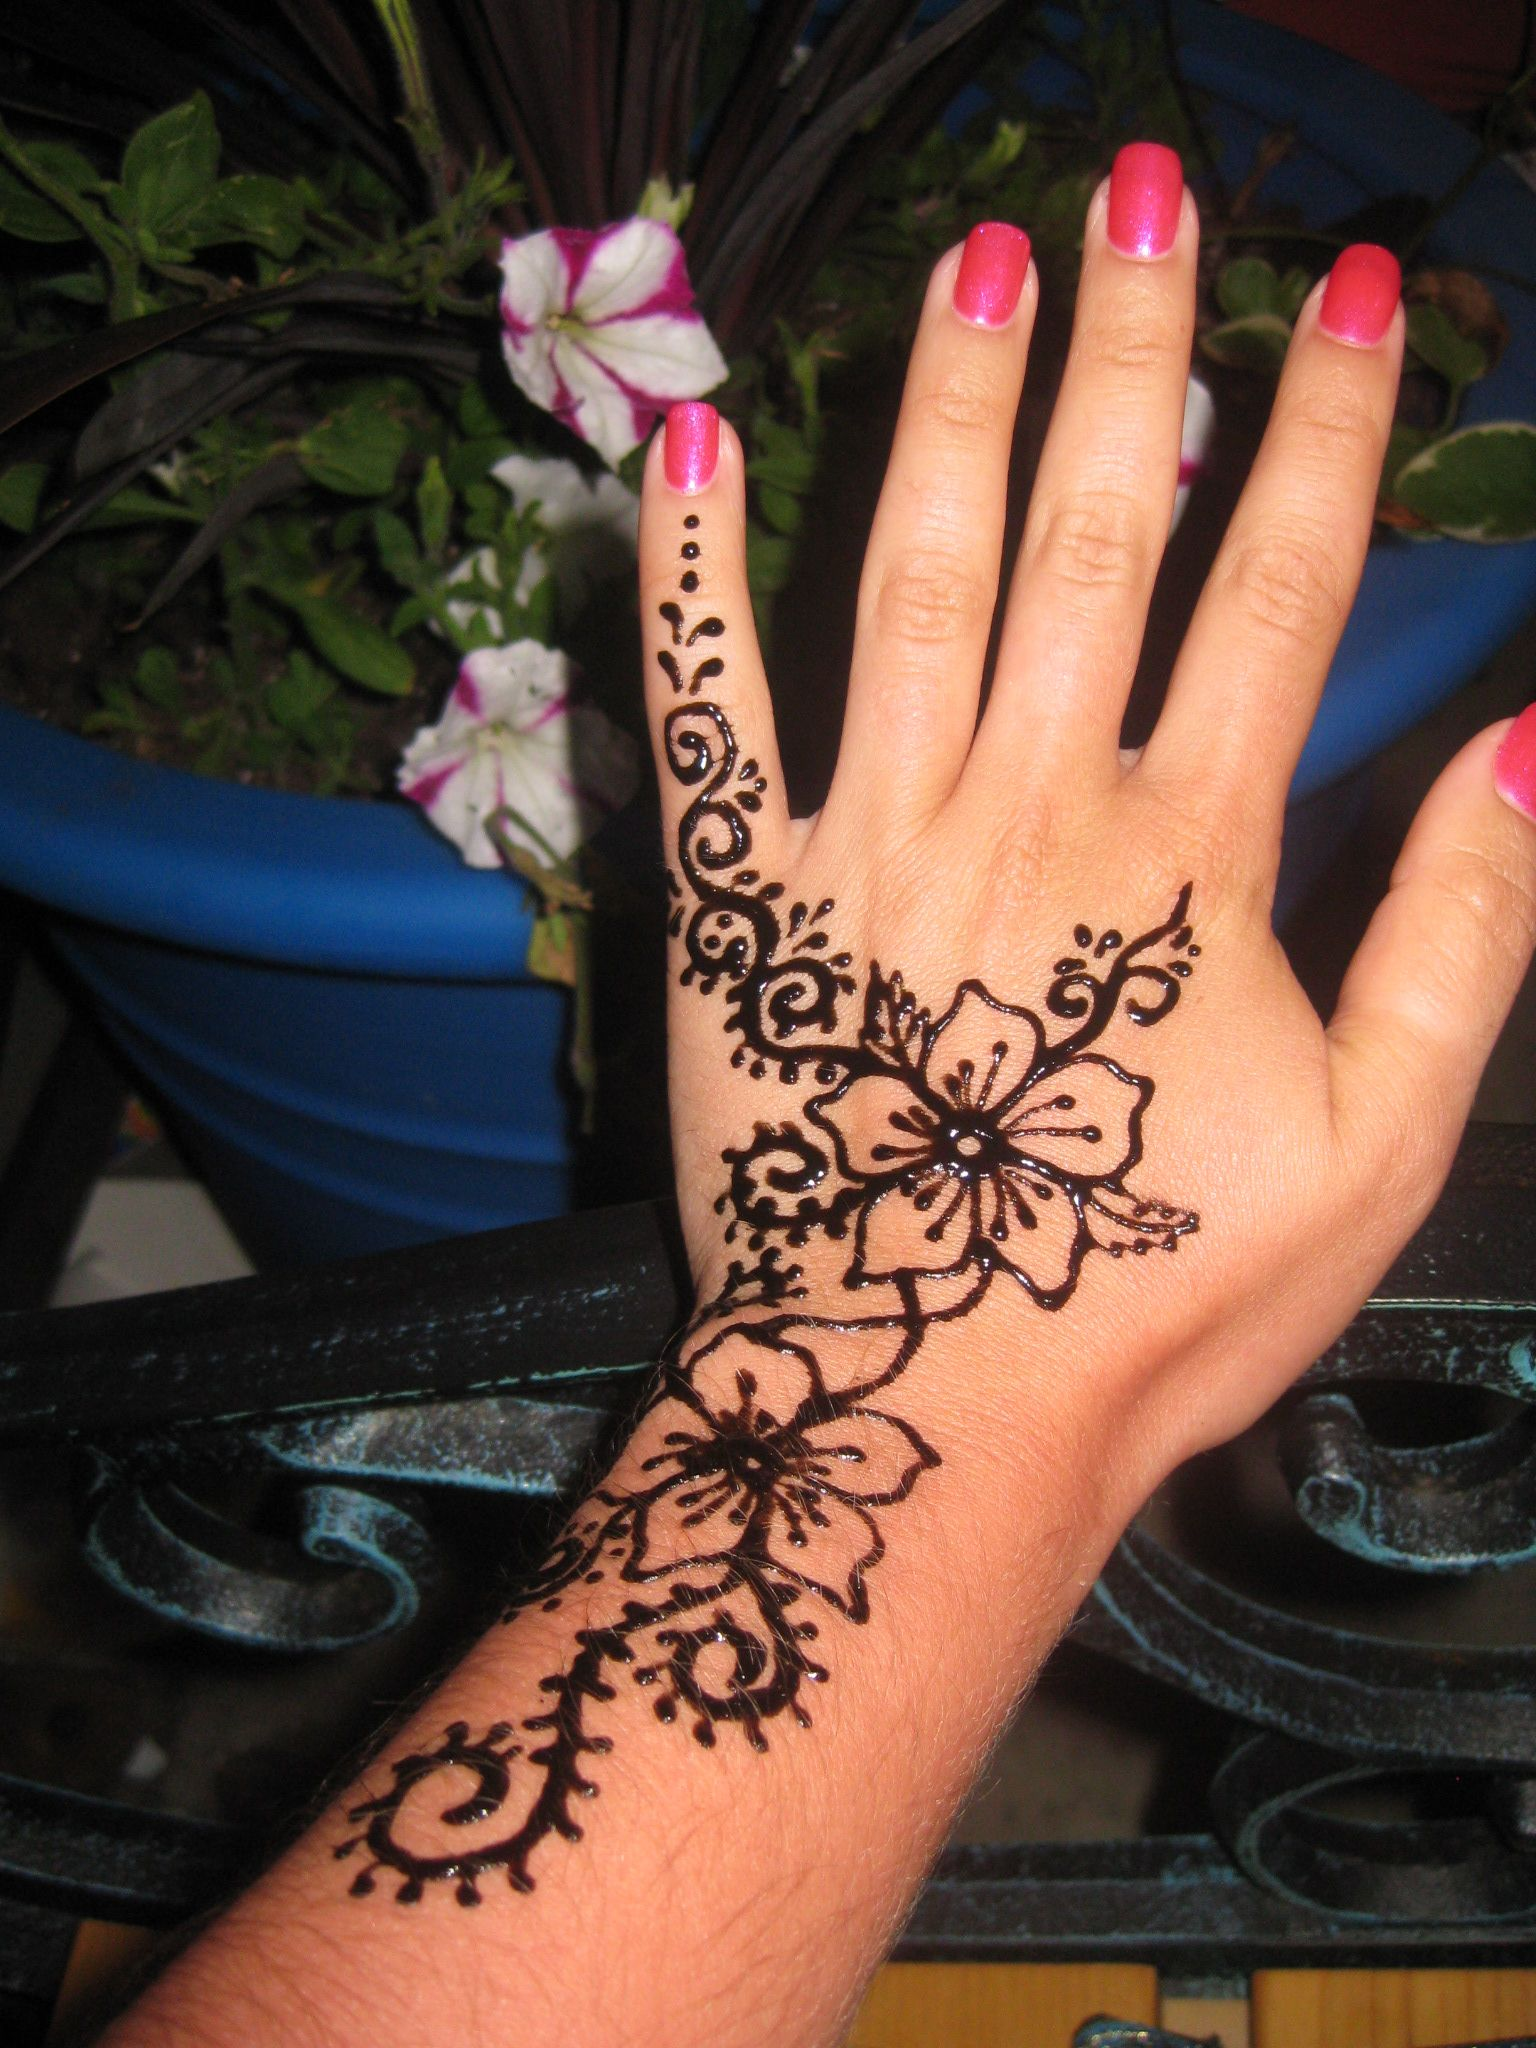 24 Henna Tattoos By Rachel Goldman You Must See: Henna Tattoo That I Got In Ocean City, MD Summer '11 ... I